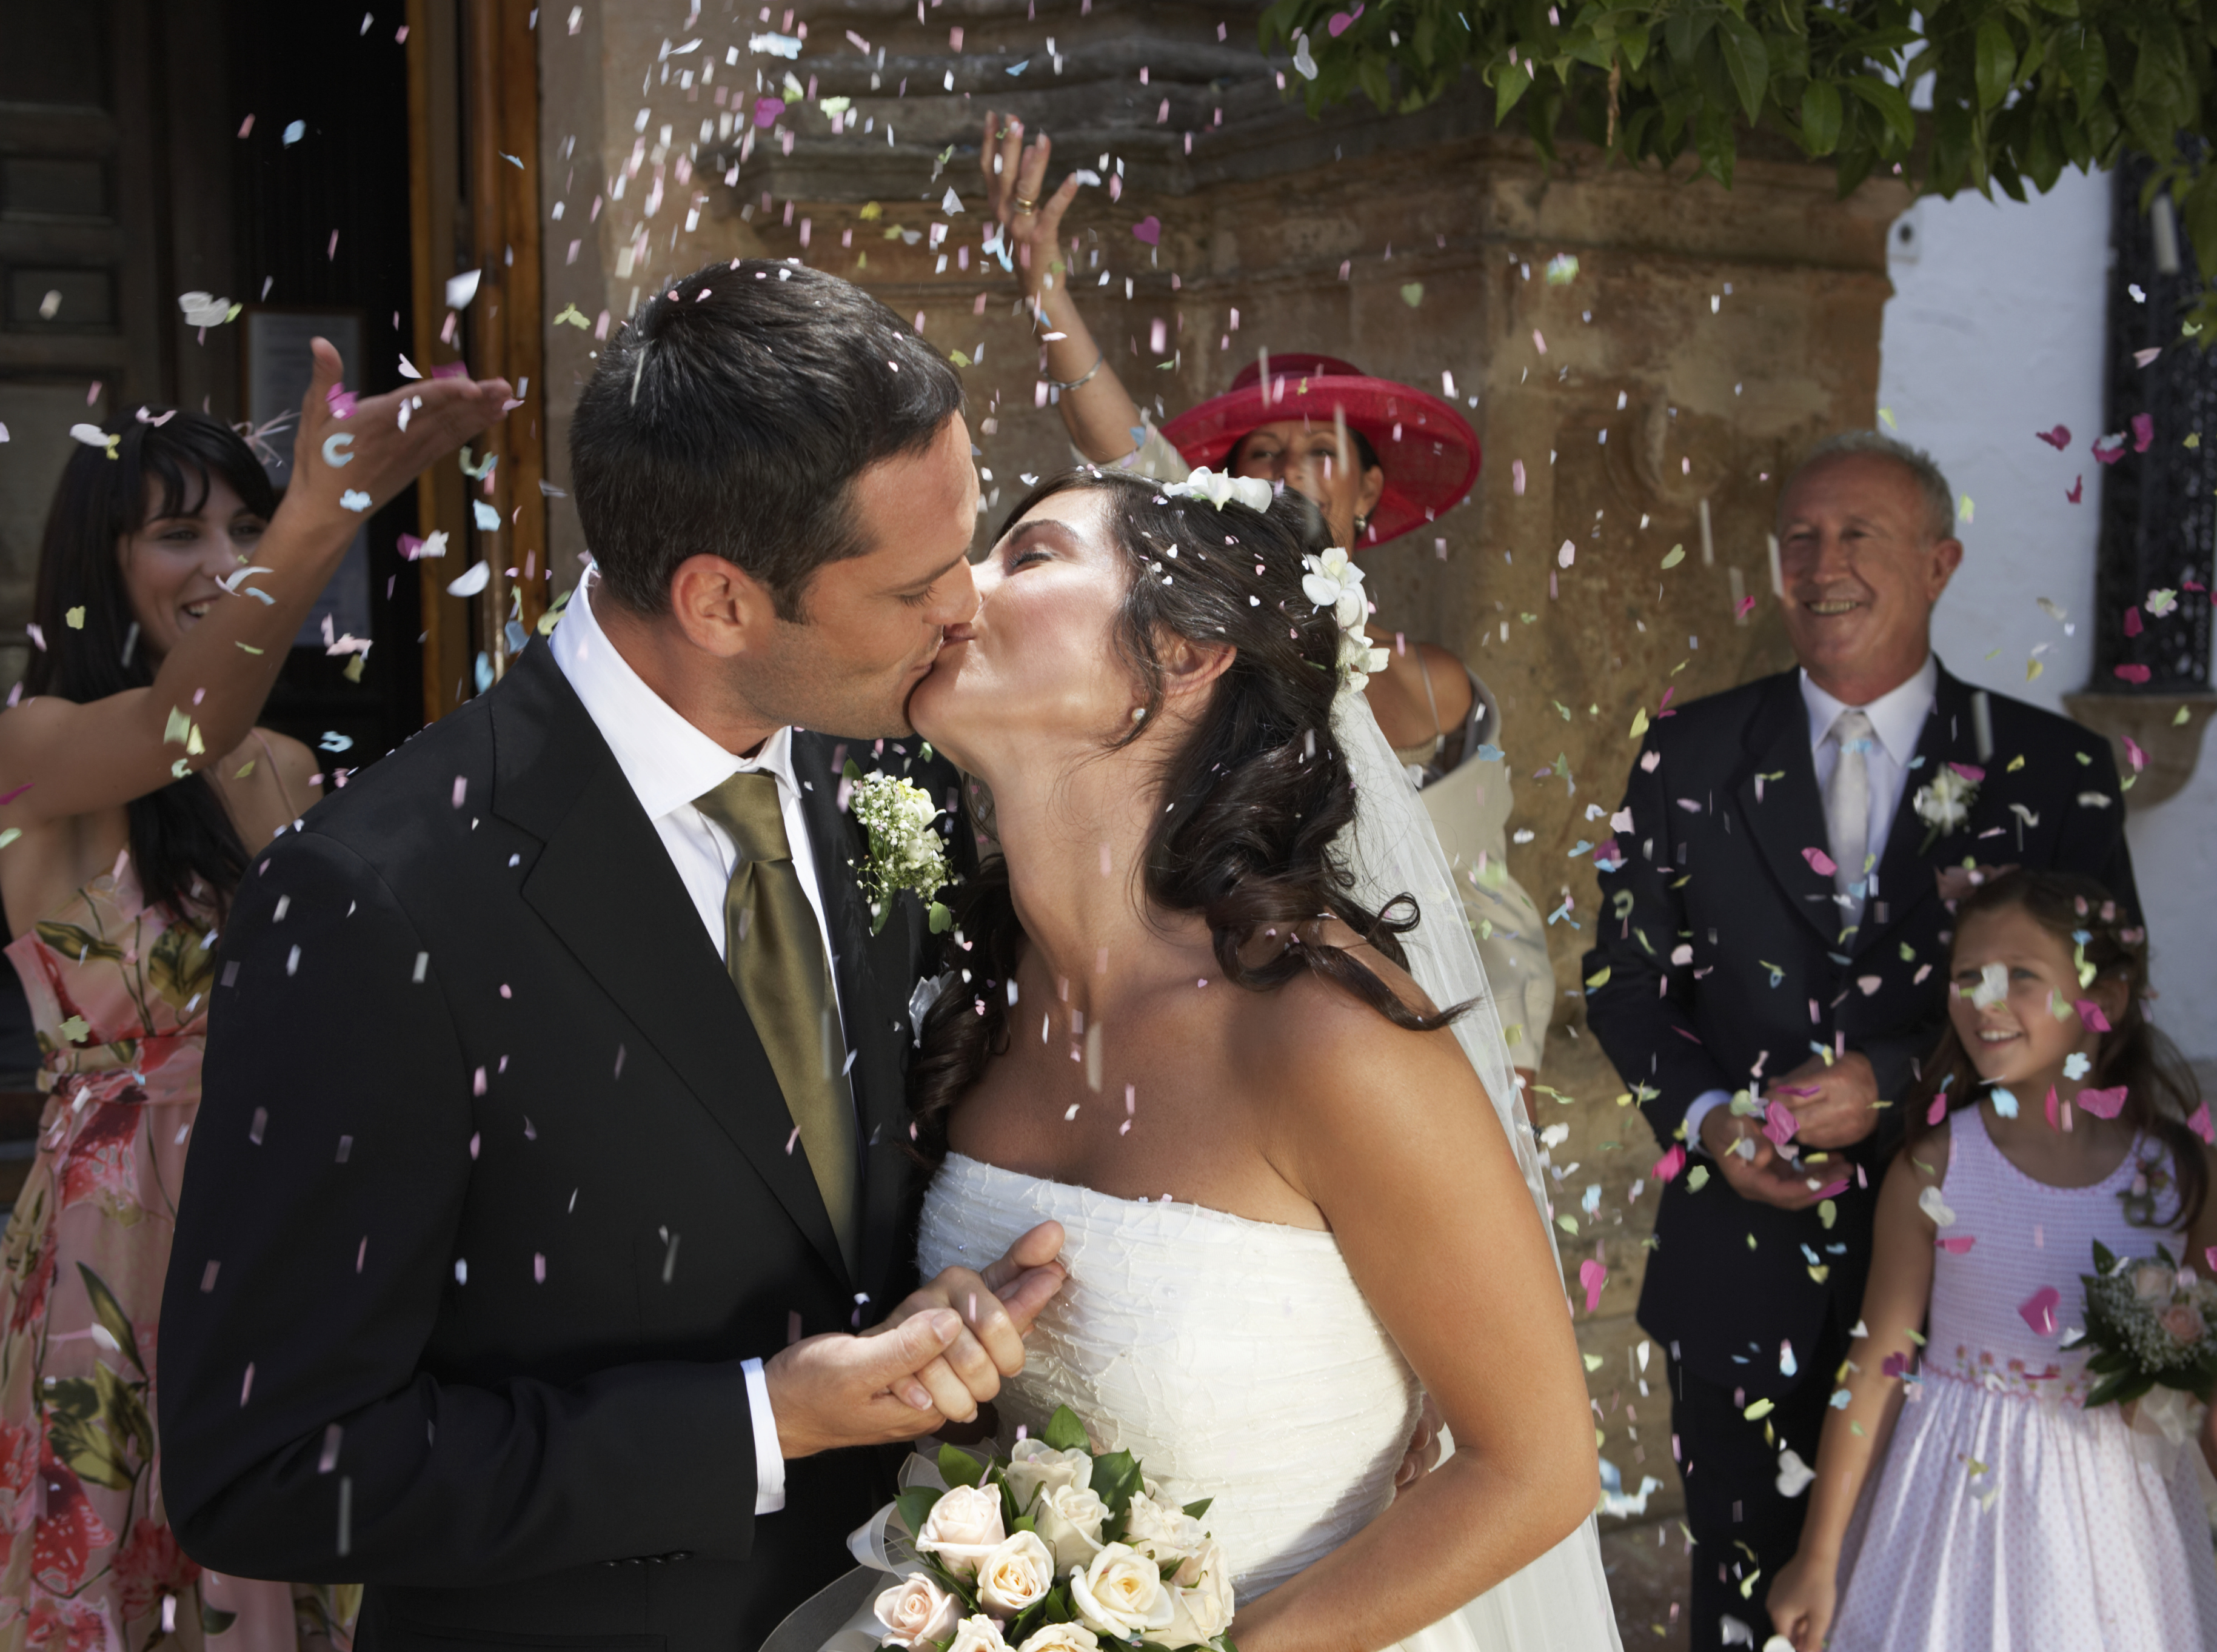 Weddings cost as much as new cars